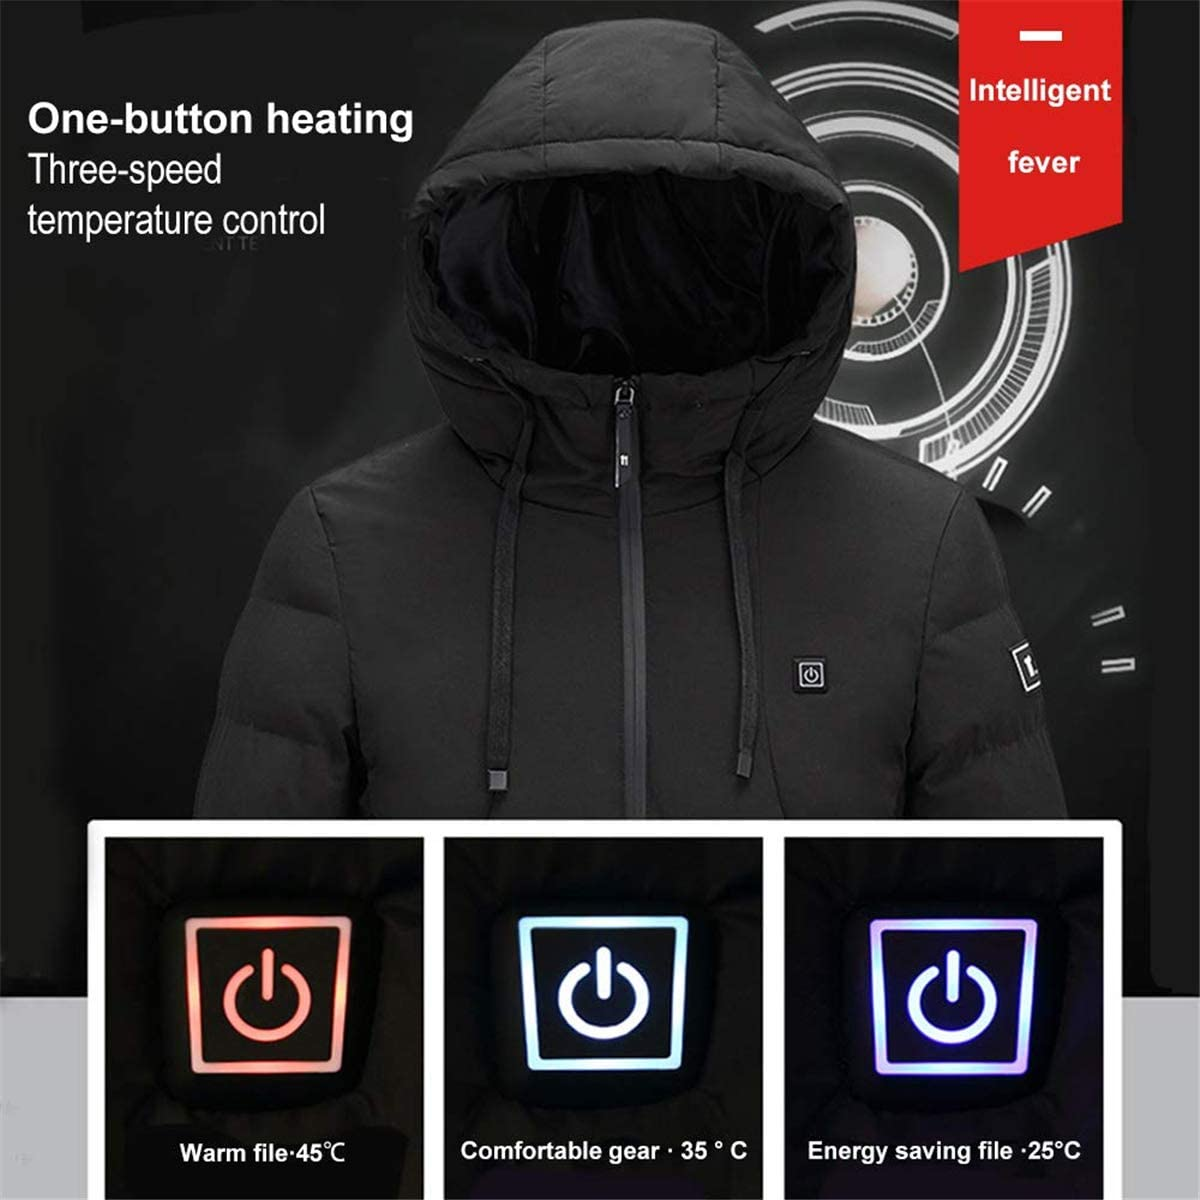 Heated Jackets For Men With A Battery Pack Included COFFEE CAT Heated Jackets For Men Waterproof Heated Jackets For Men Motorcycle